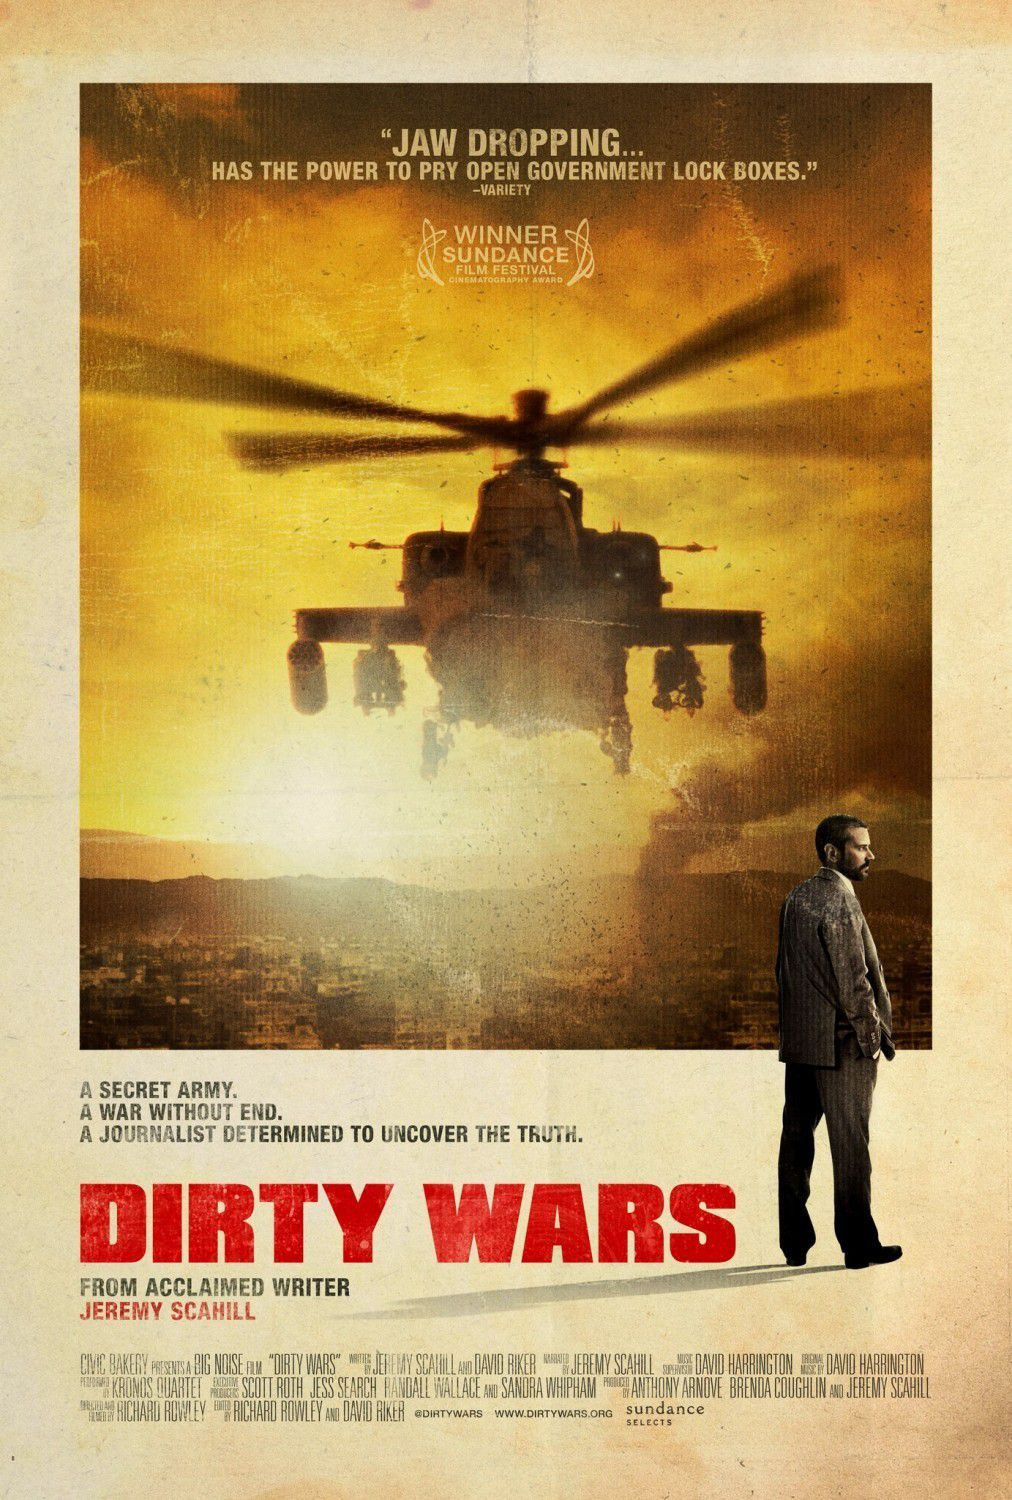 Dirty Wars - Documentaire (2013)